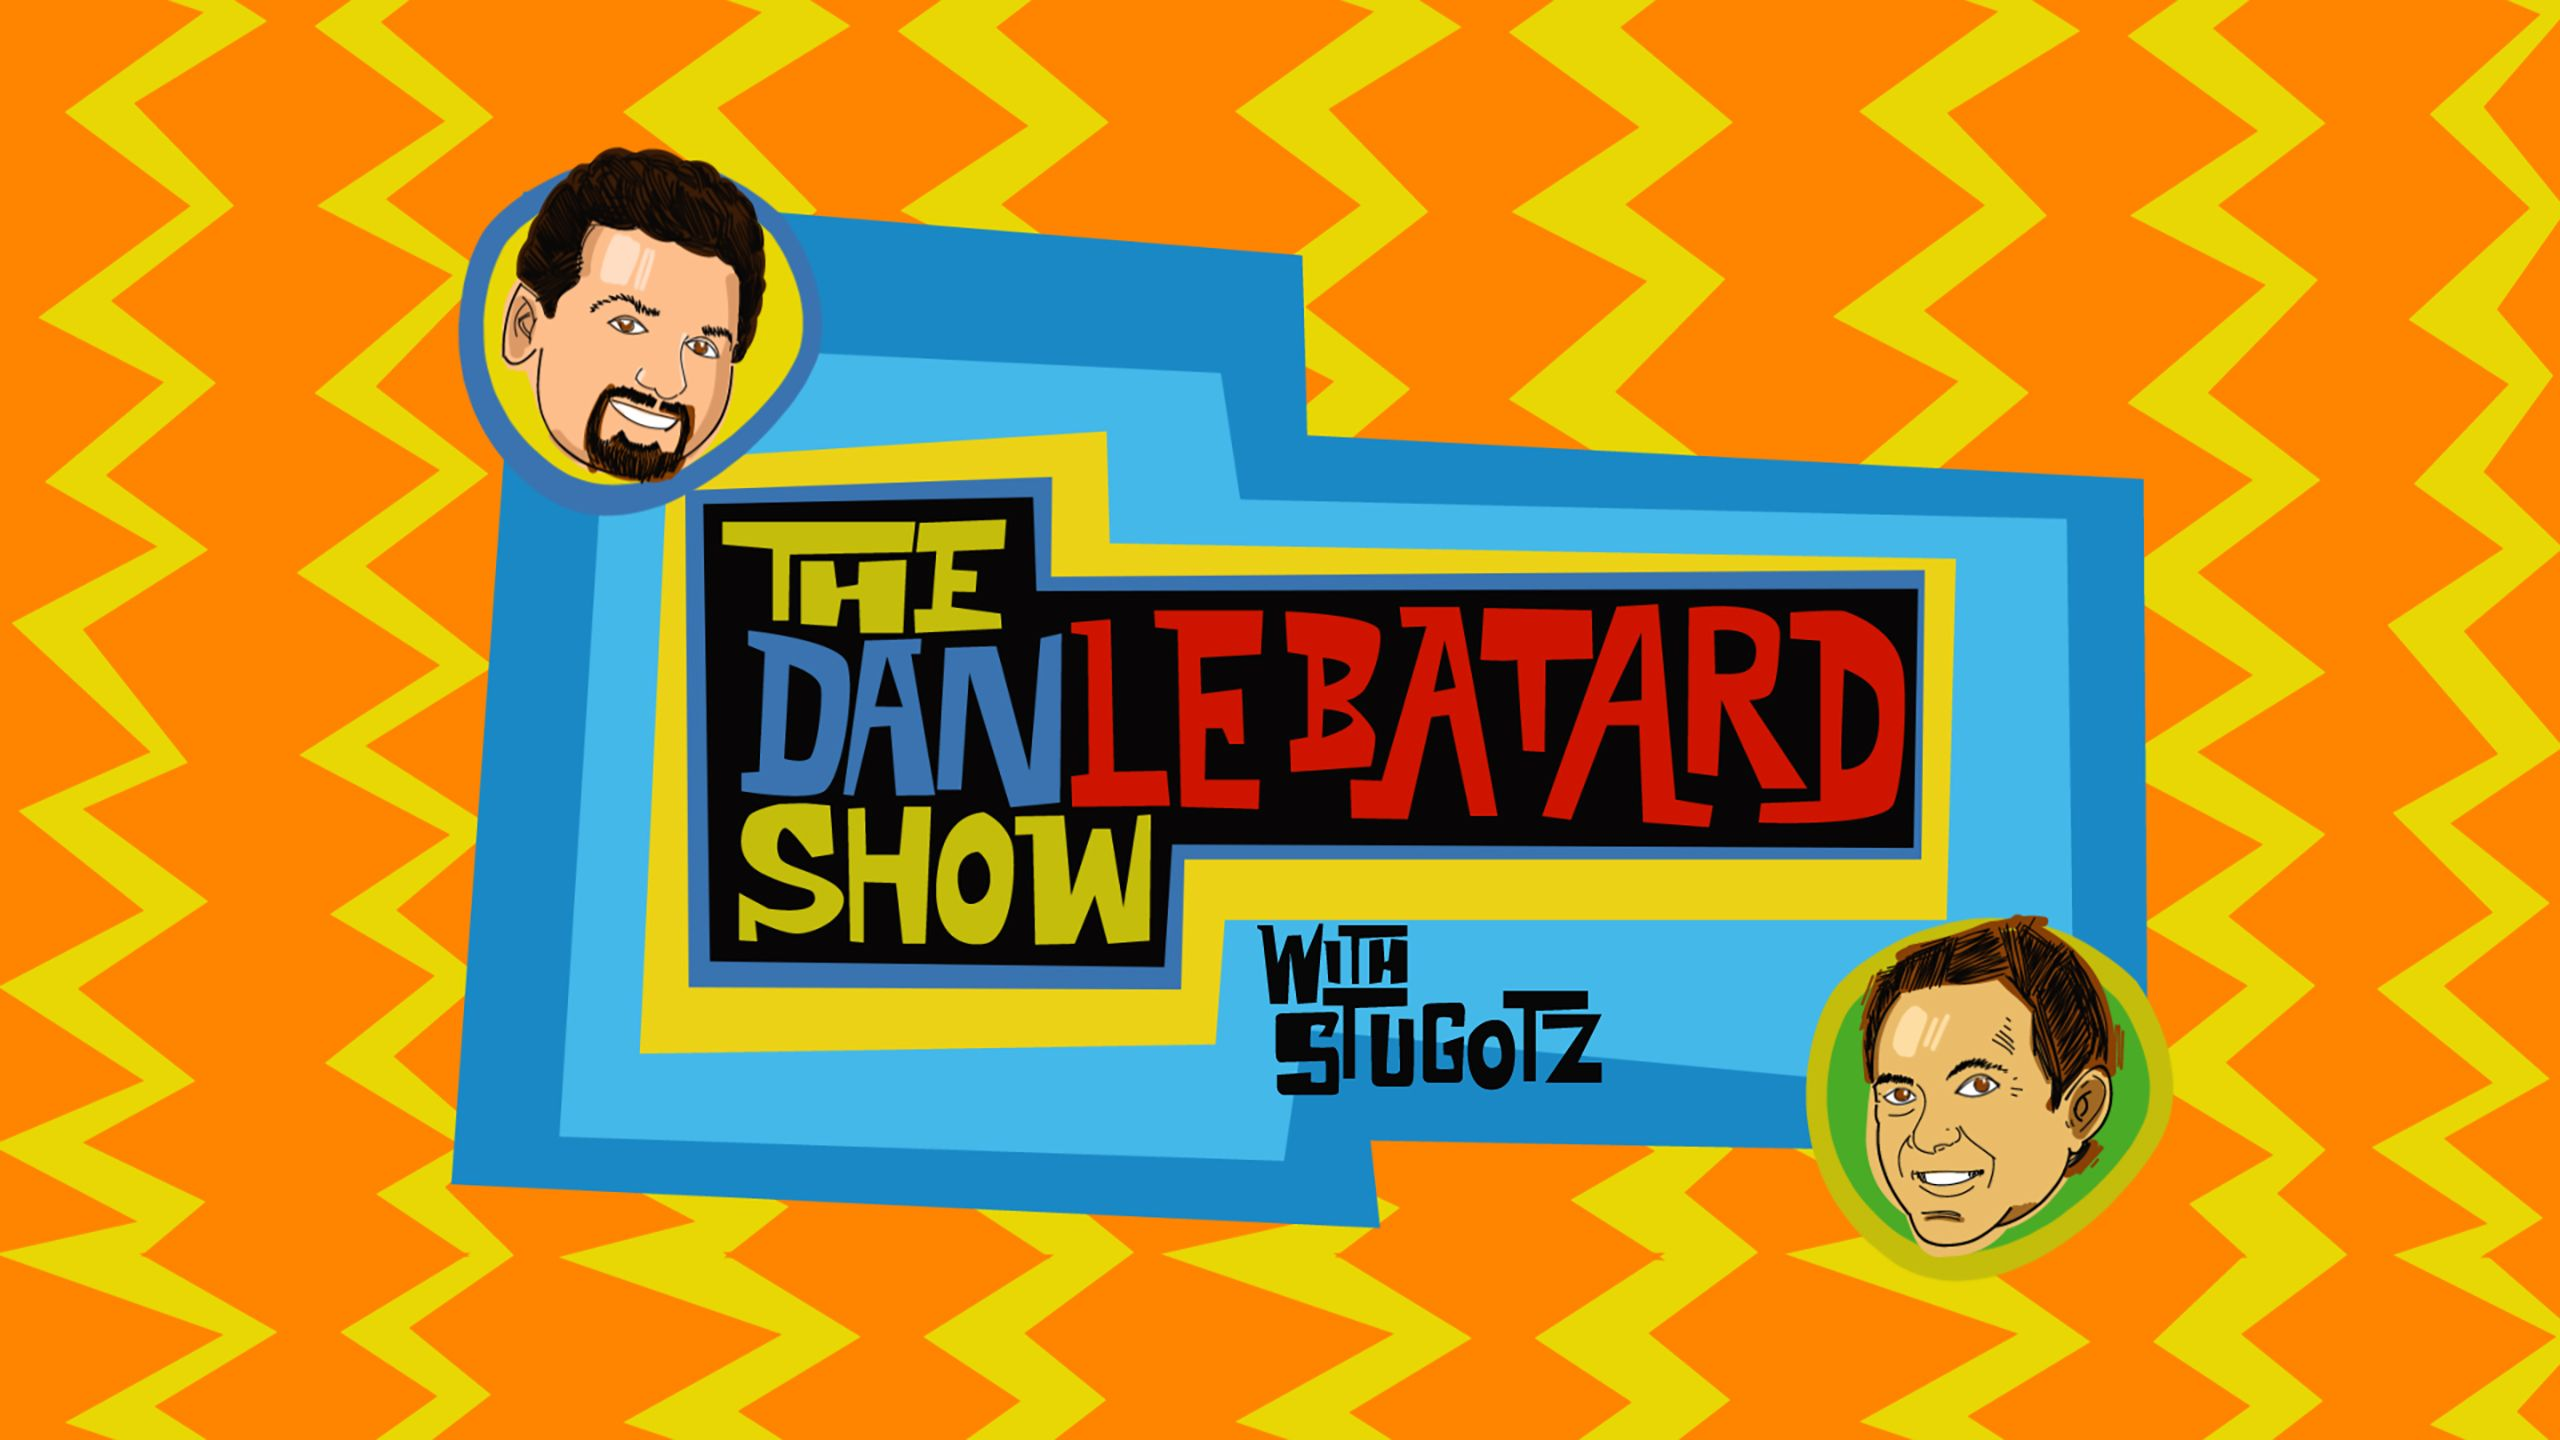 Tue, 1/16 - The Dan Le Batard Show with Stugotz Presented by Progressive